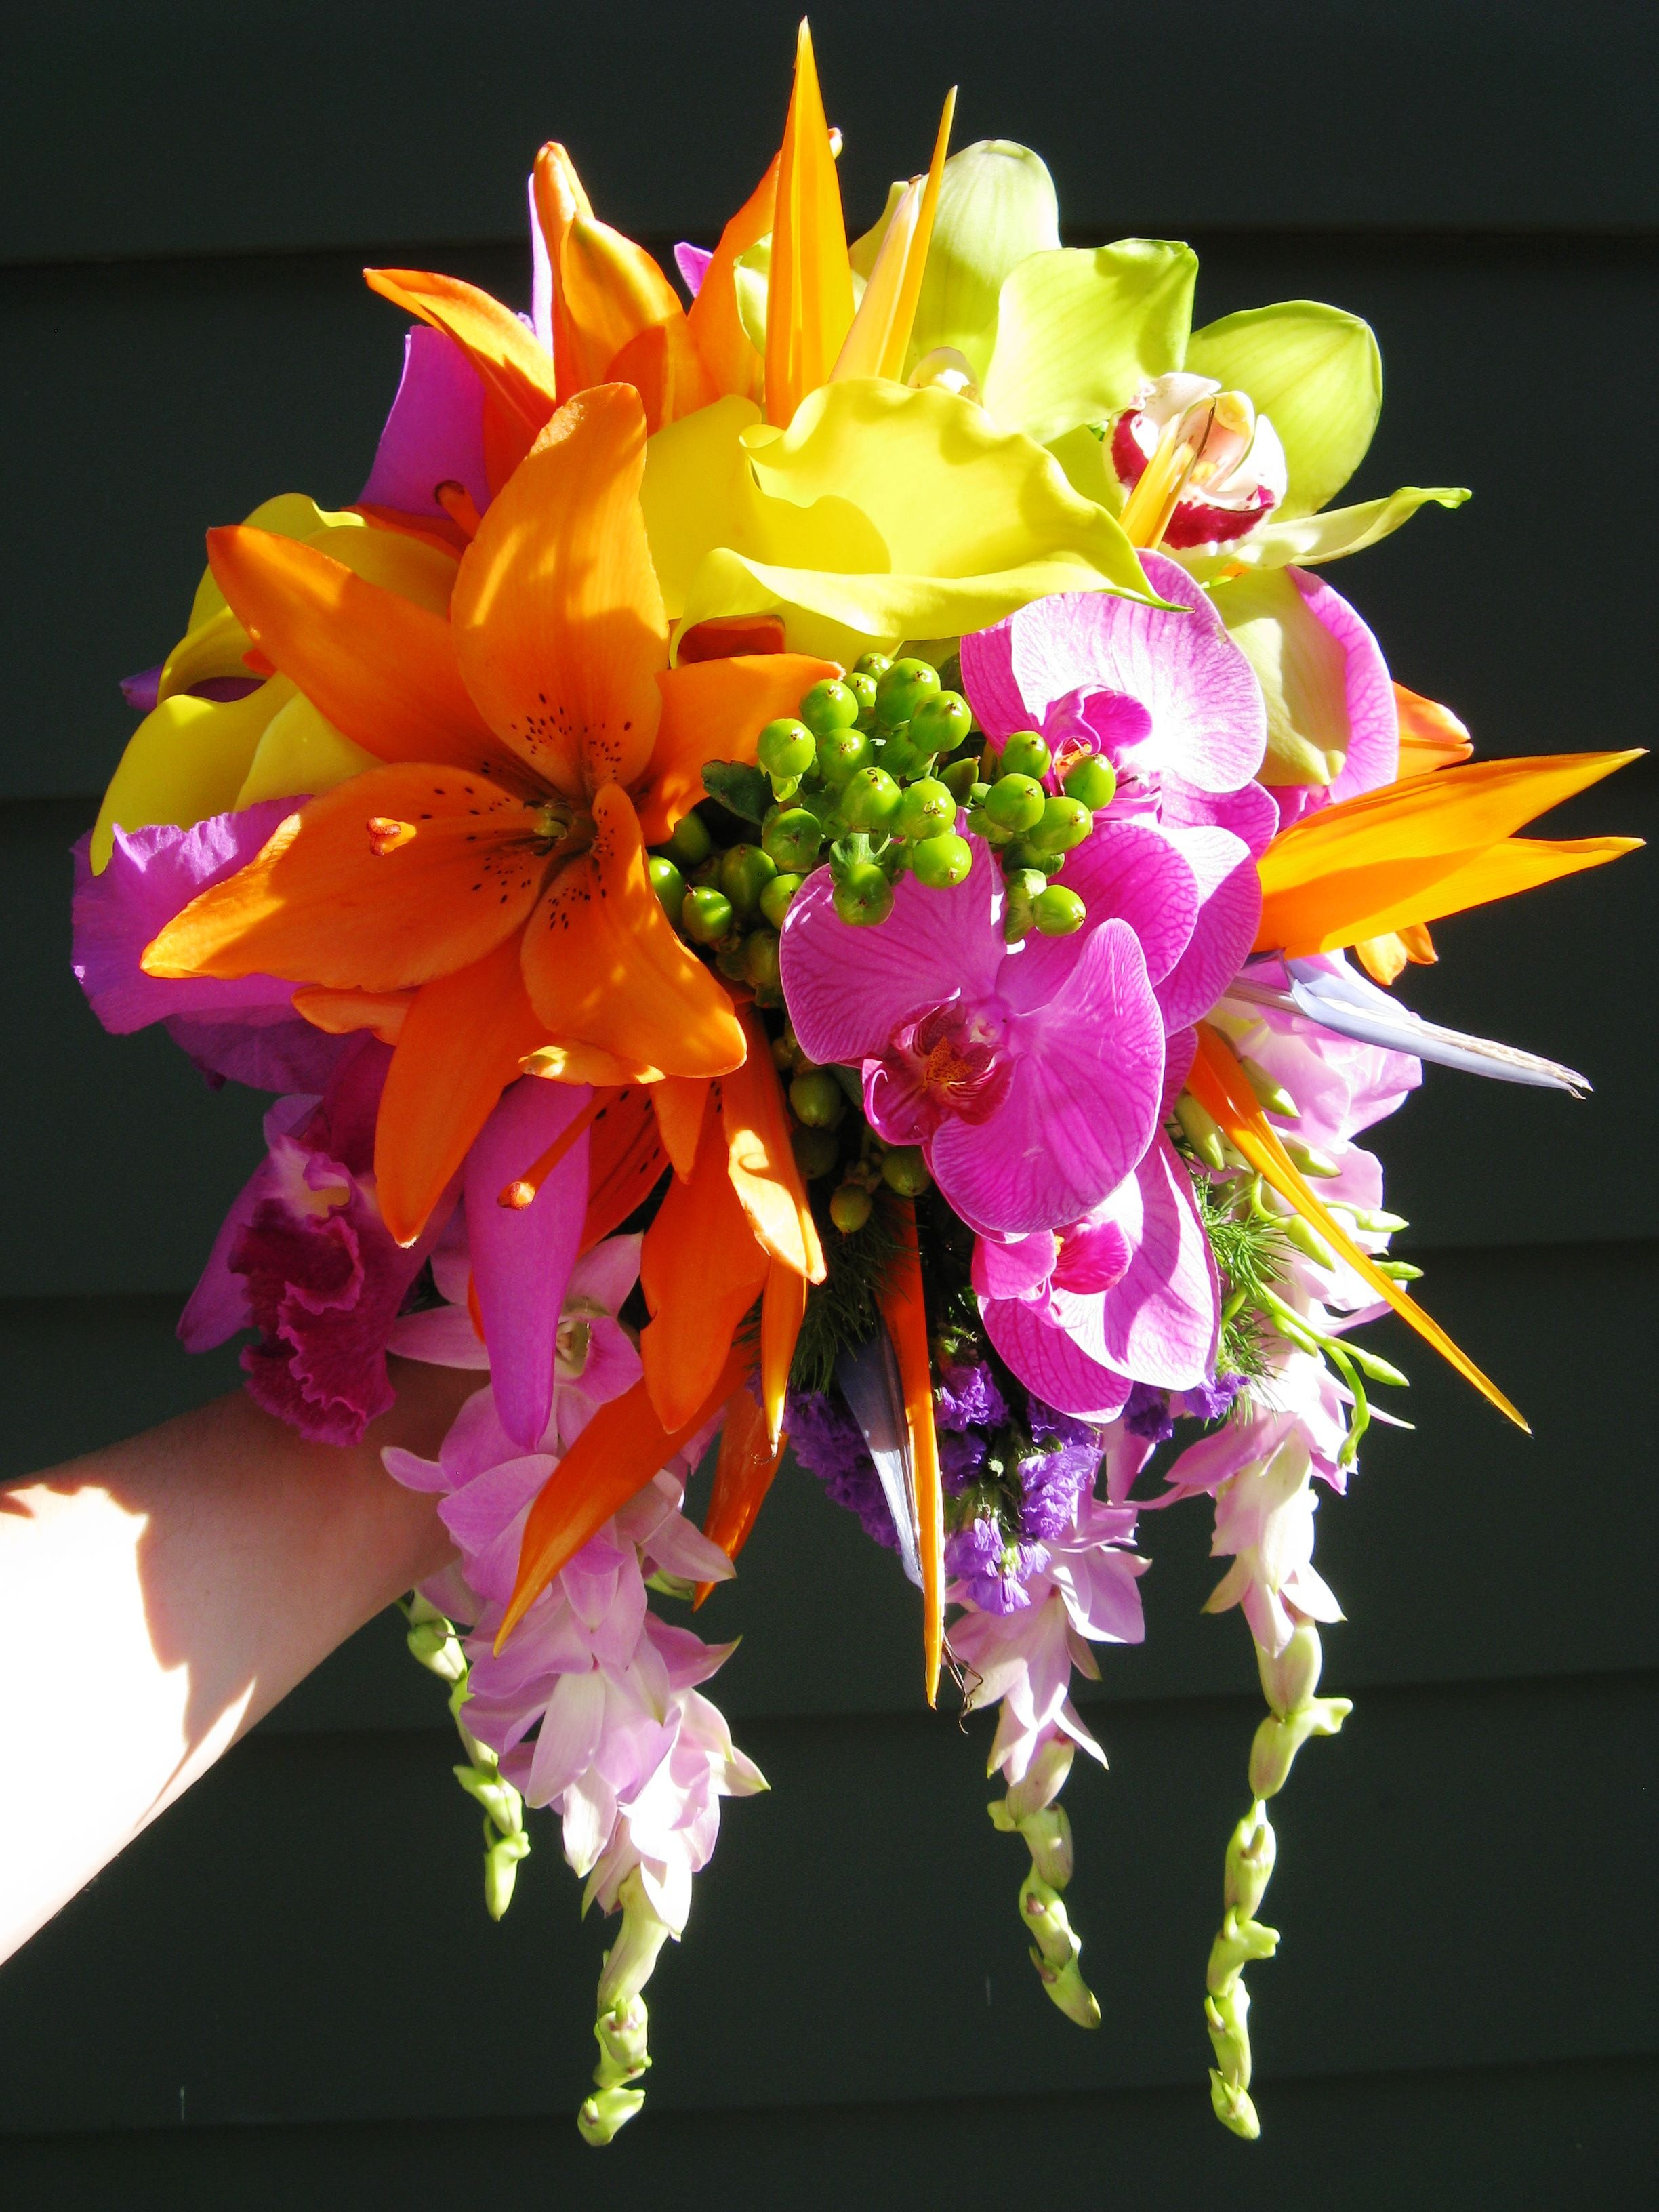 Tropical wedding bouquet for a destination wedding | Lets Say "|2448|3264|?|66f43ae6c13029a63261581ba72efa2f|False|UNLIKELY|0.3051336109638214